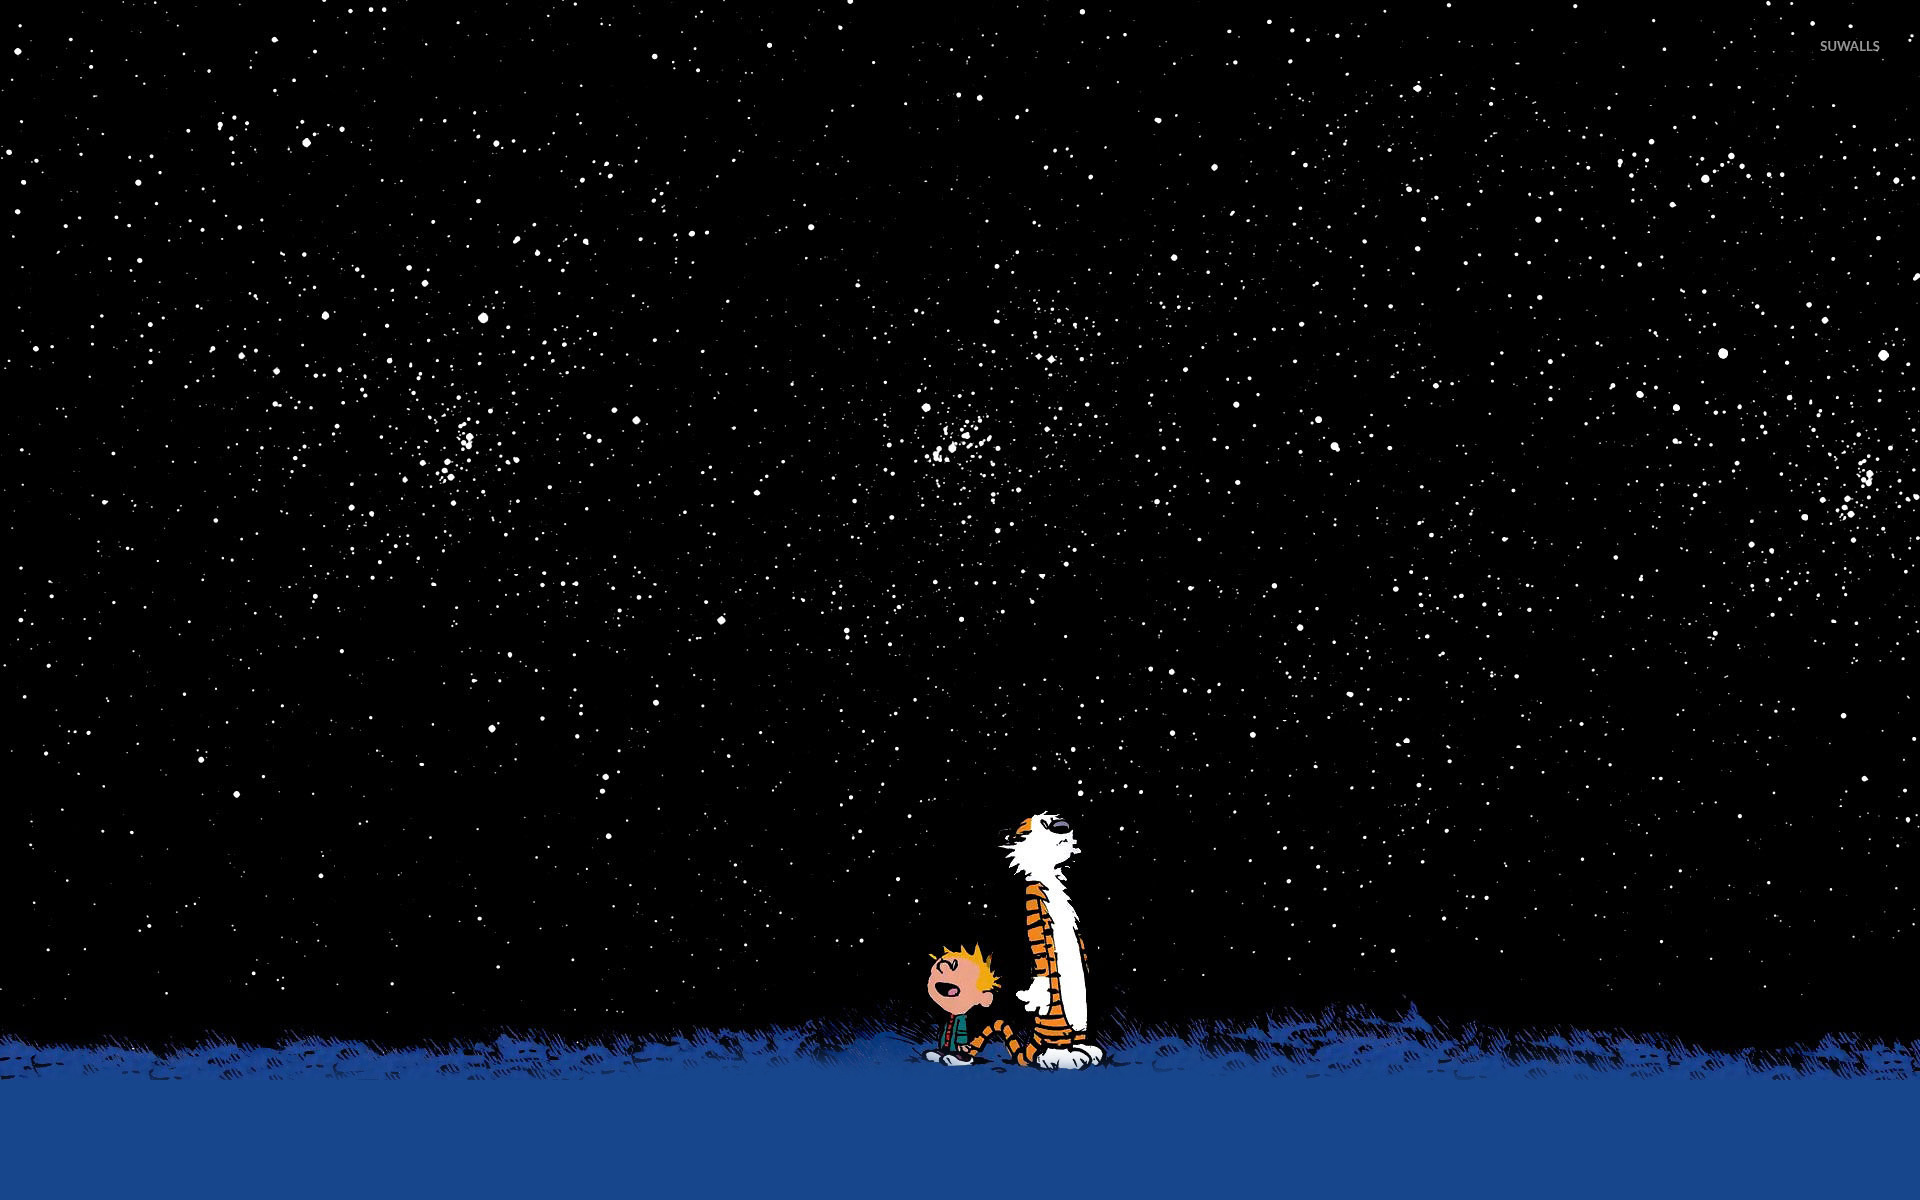 Calvin and Hobbes wallpaper   Comic wallpapers   14352 1366x768